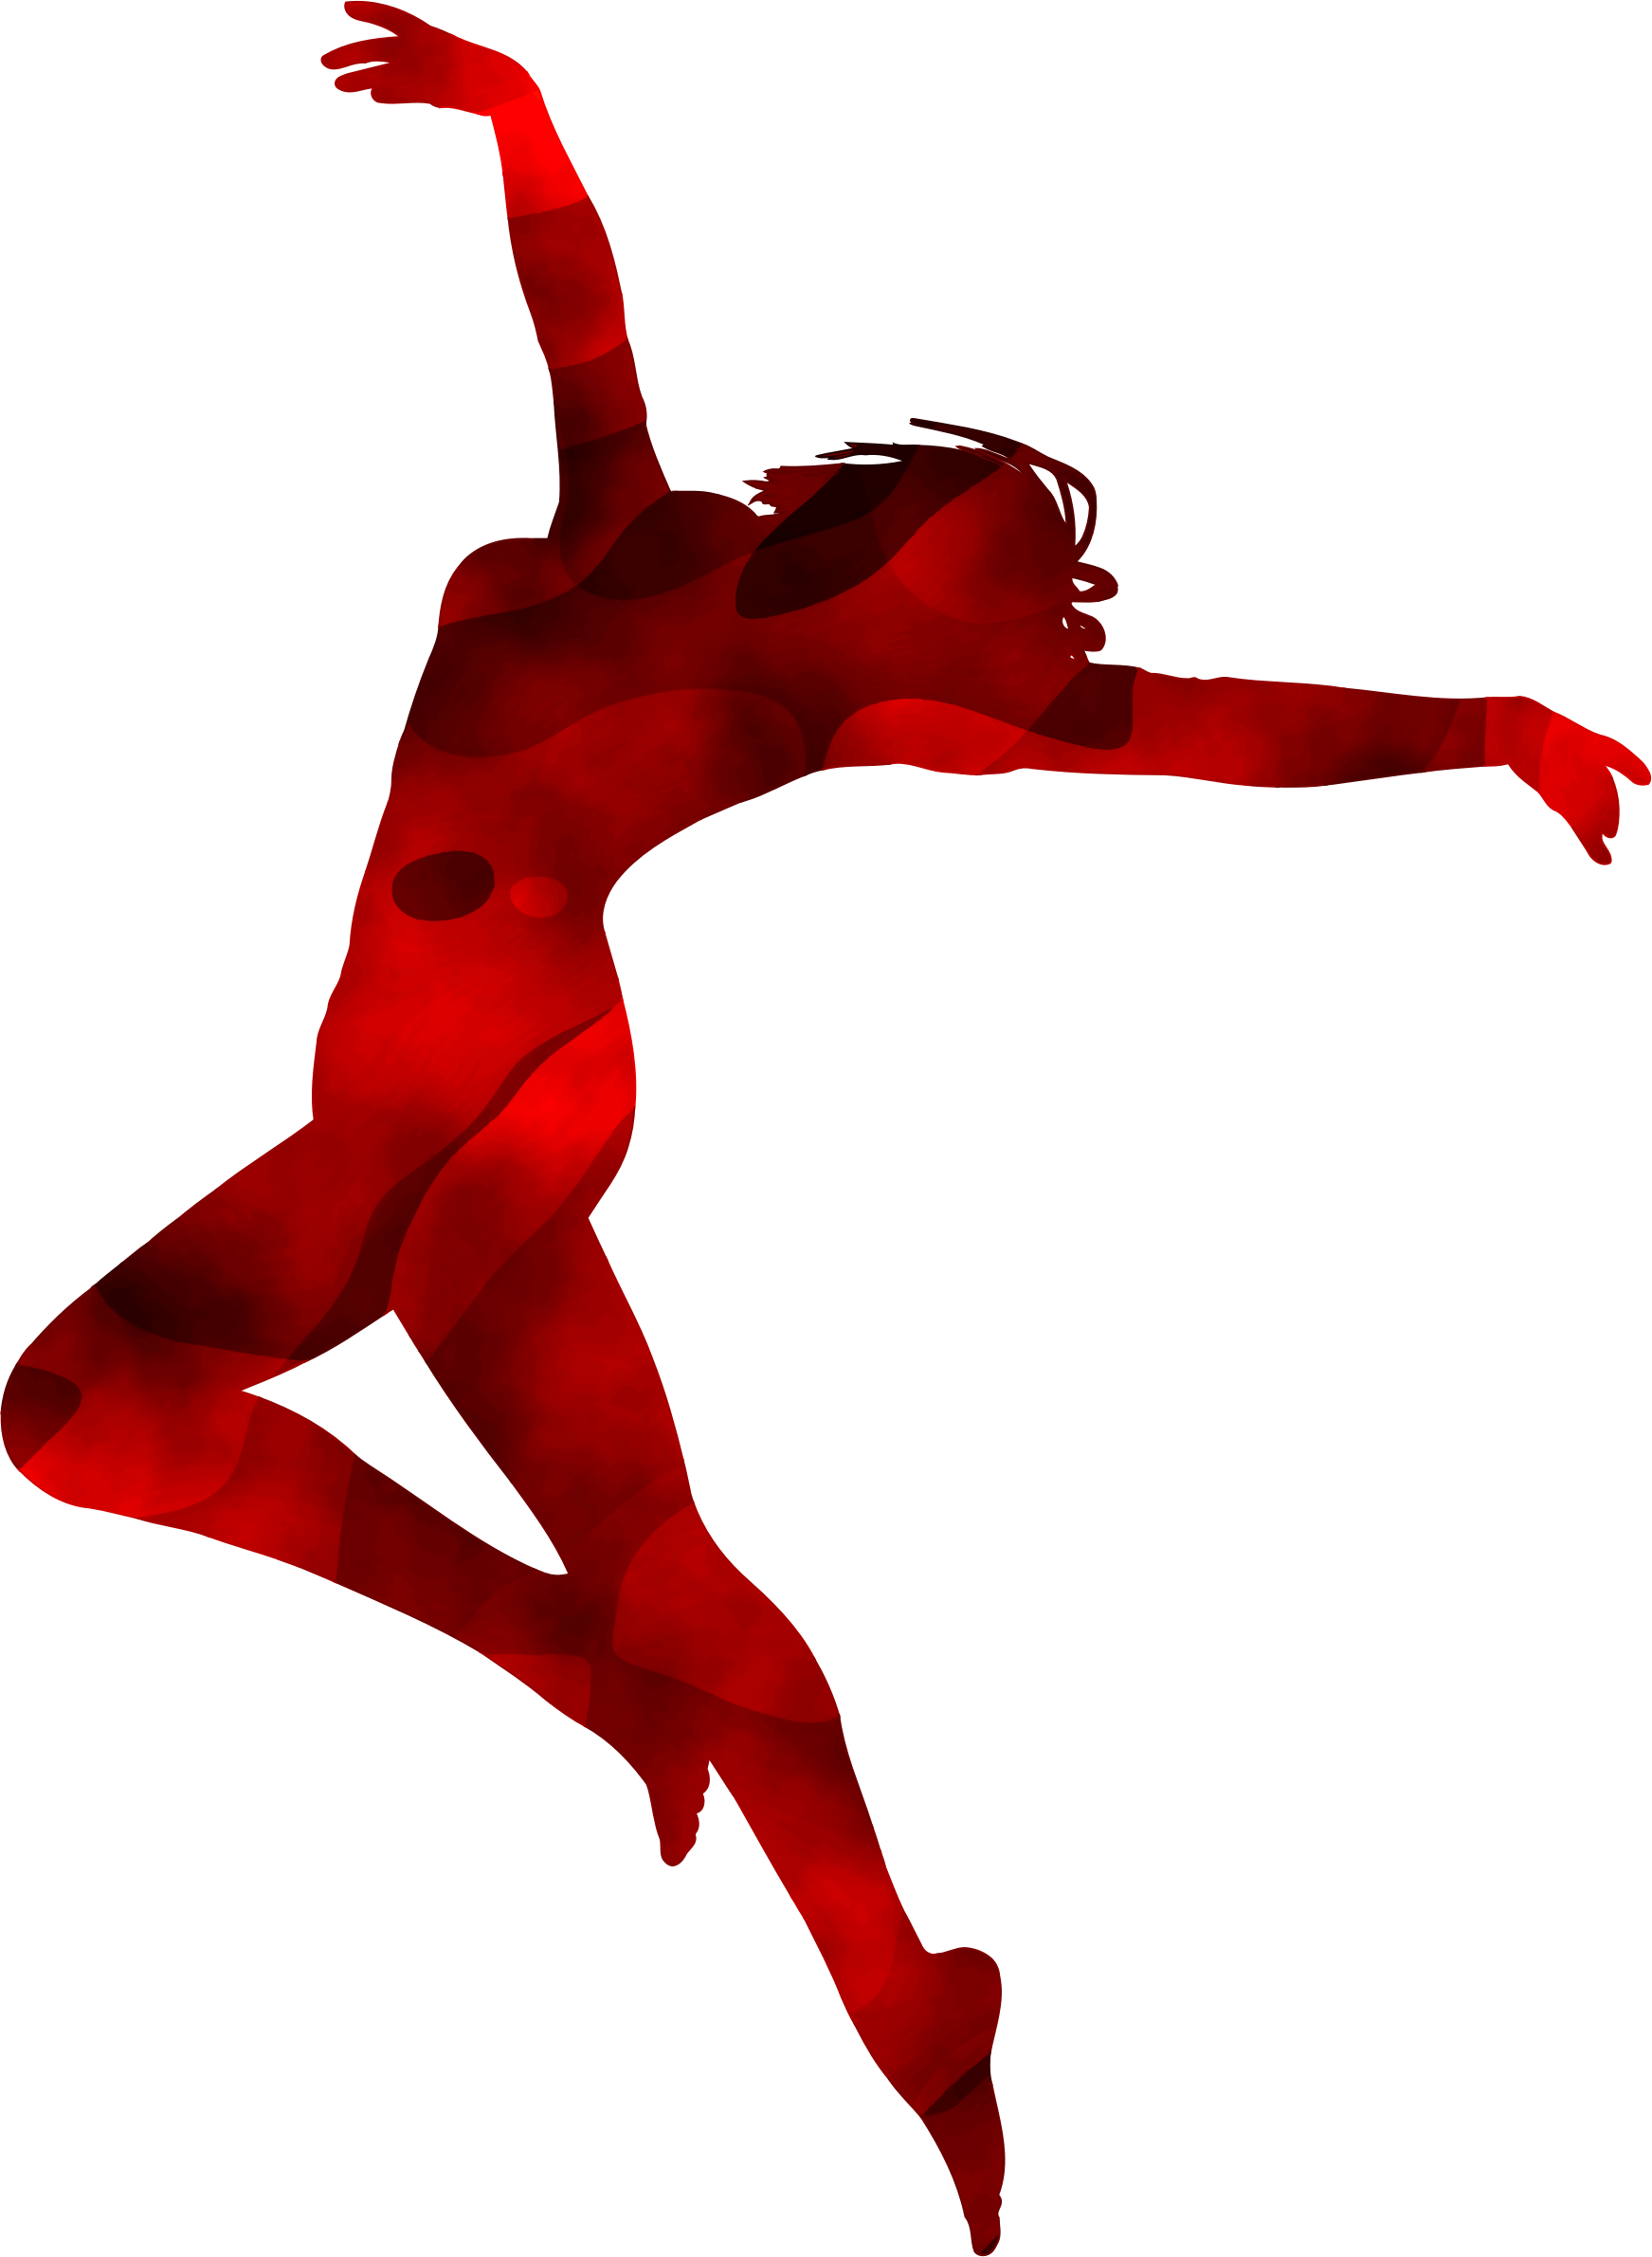 Dancer silhouette 3 by Firkin